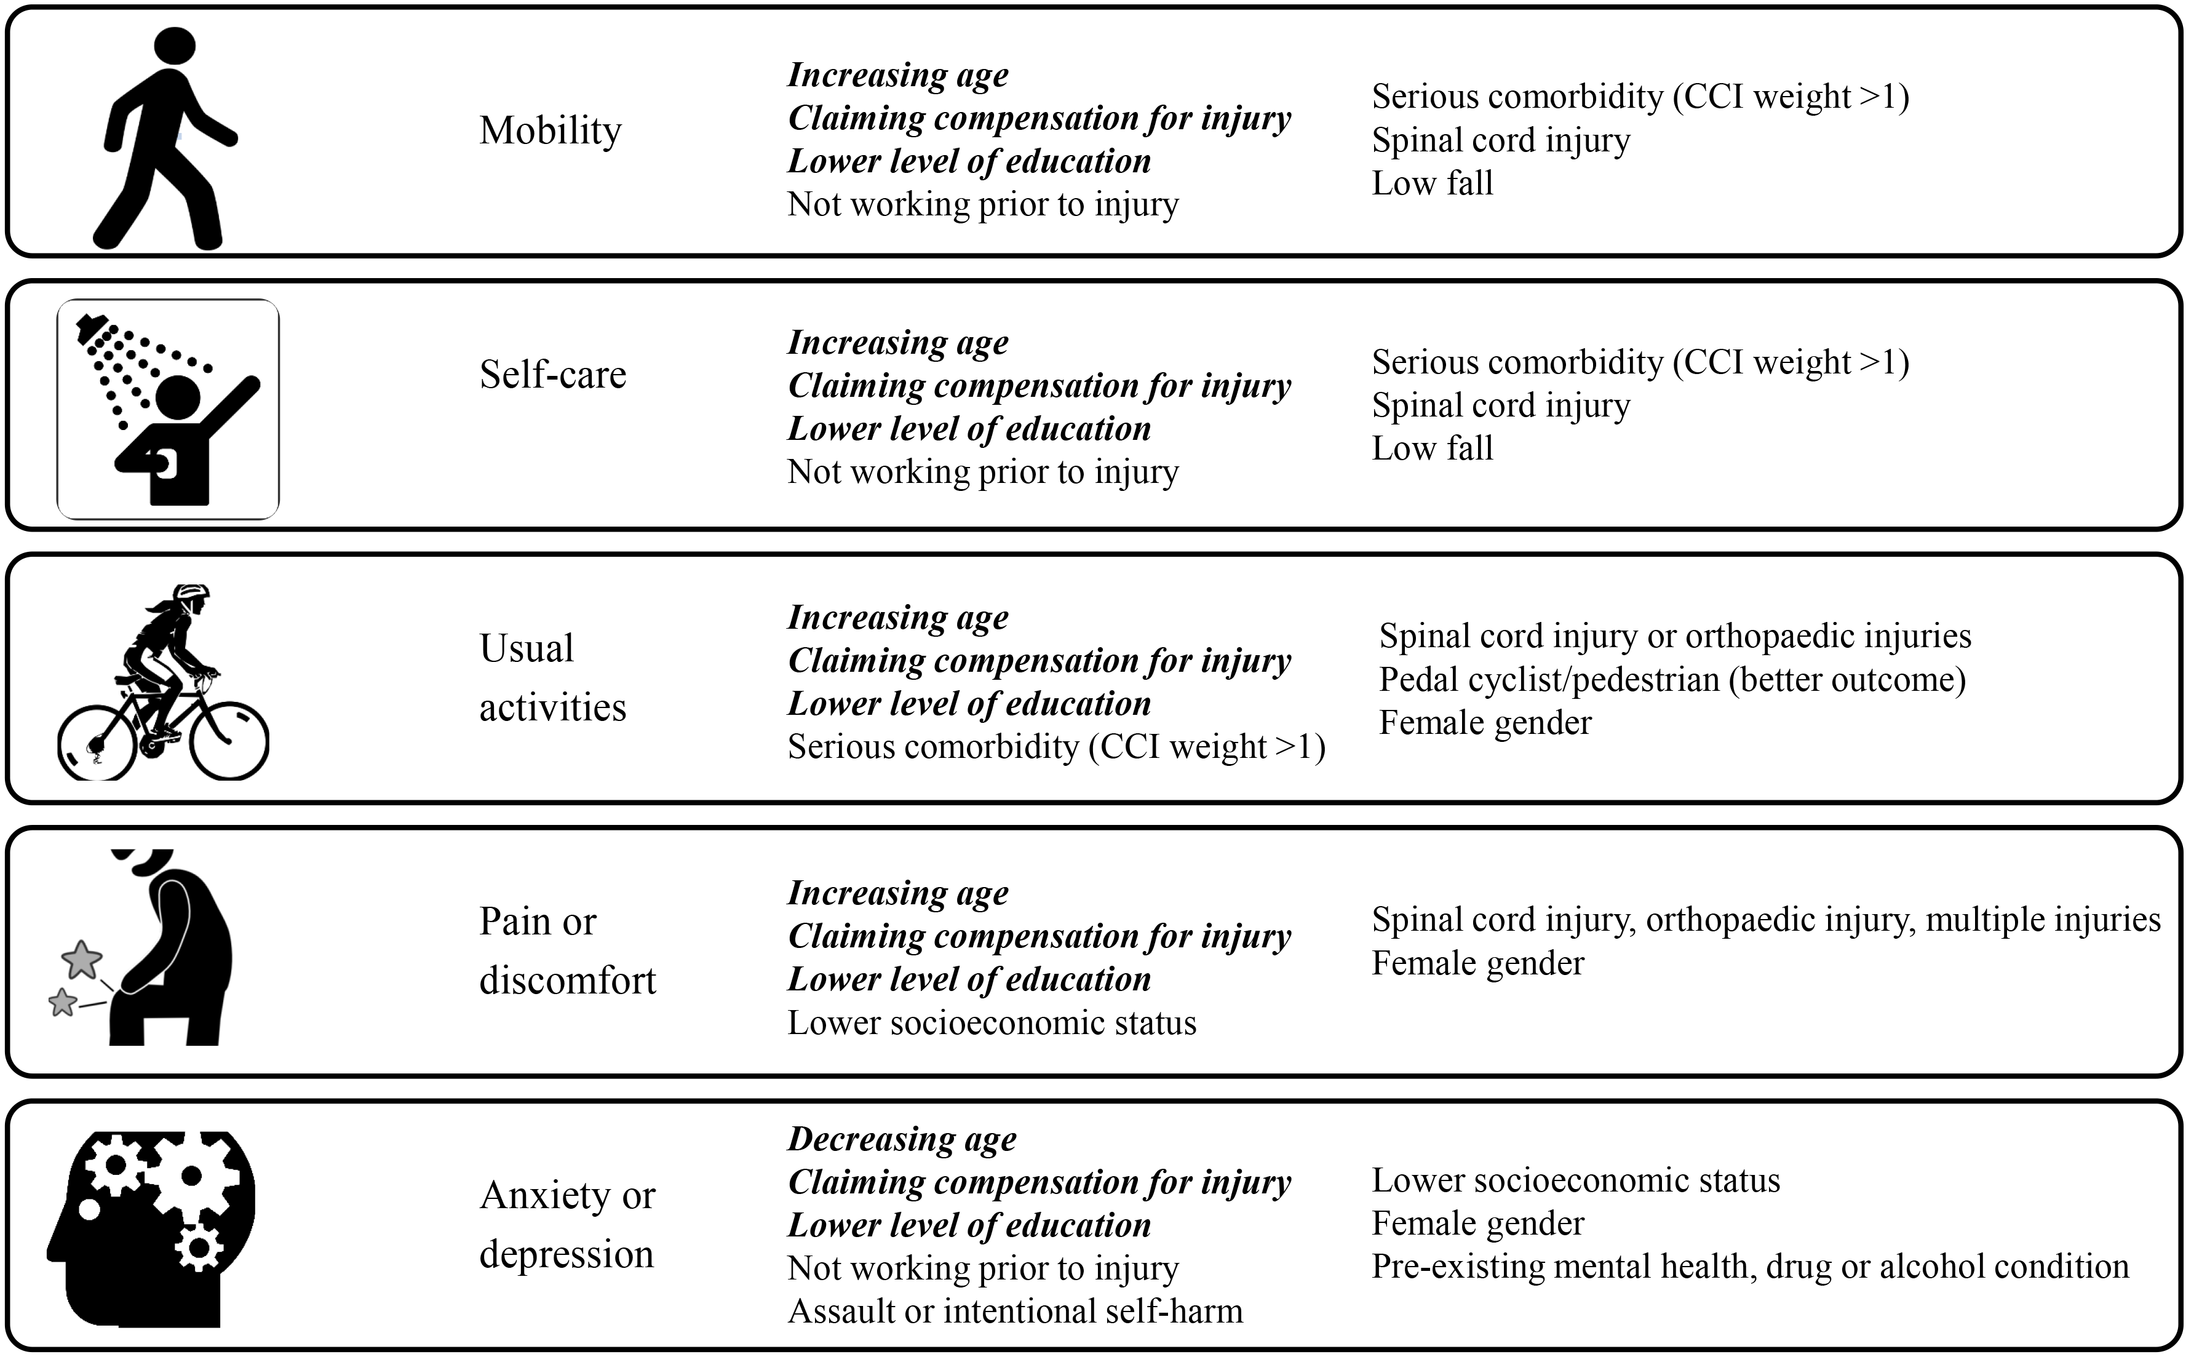 Summary of the multivariable modelling: Covariates predictive of reporting problems on each 3-level EuroQol 5 dimensions questionnaire (EQ-5D-3L) item at follow-up.